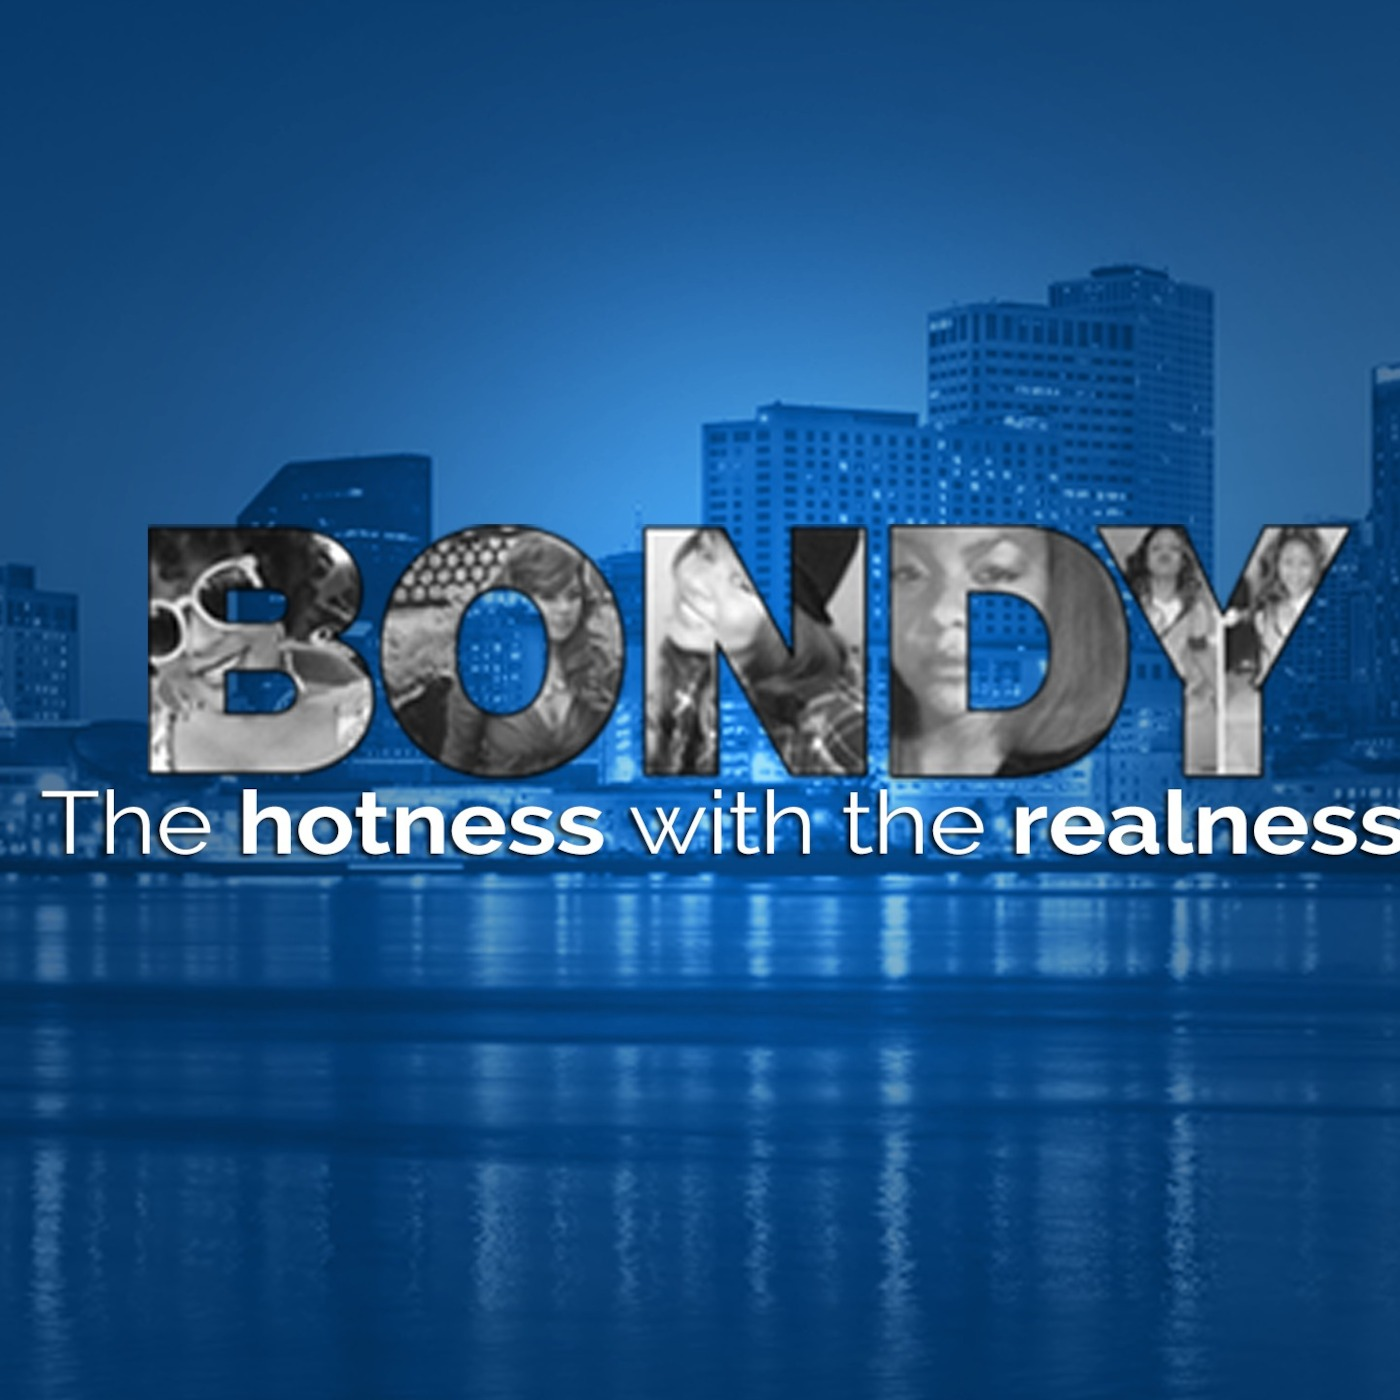 Bondy's Blues Episode 1 Duck Dynasty, Beyonce, R Kelly, etc